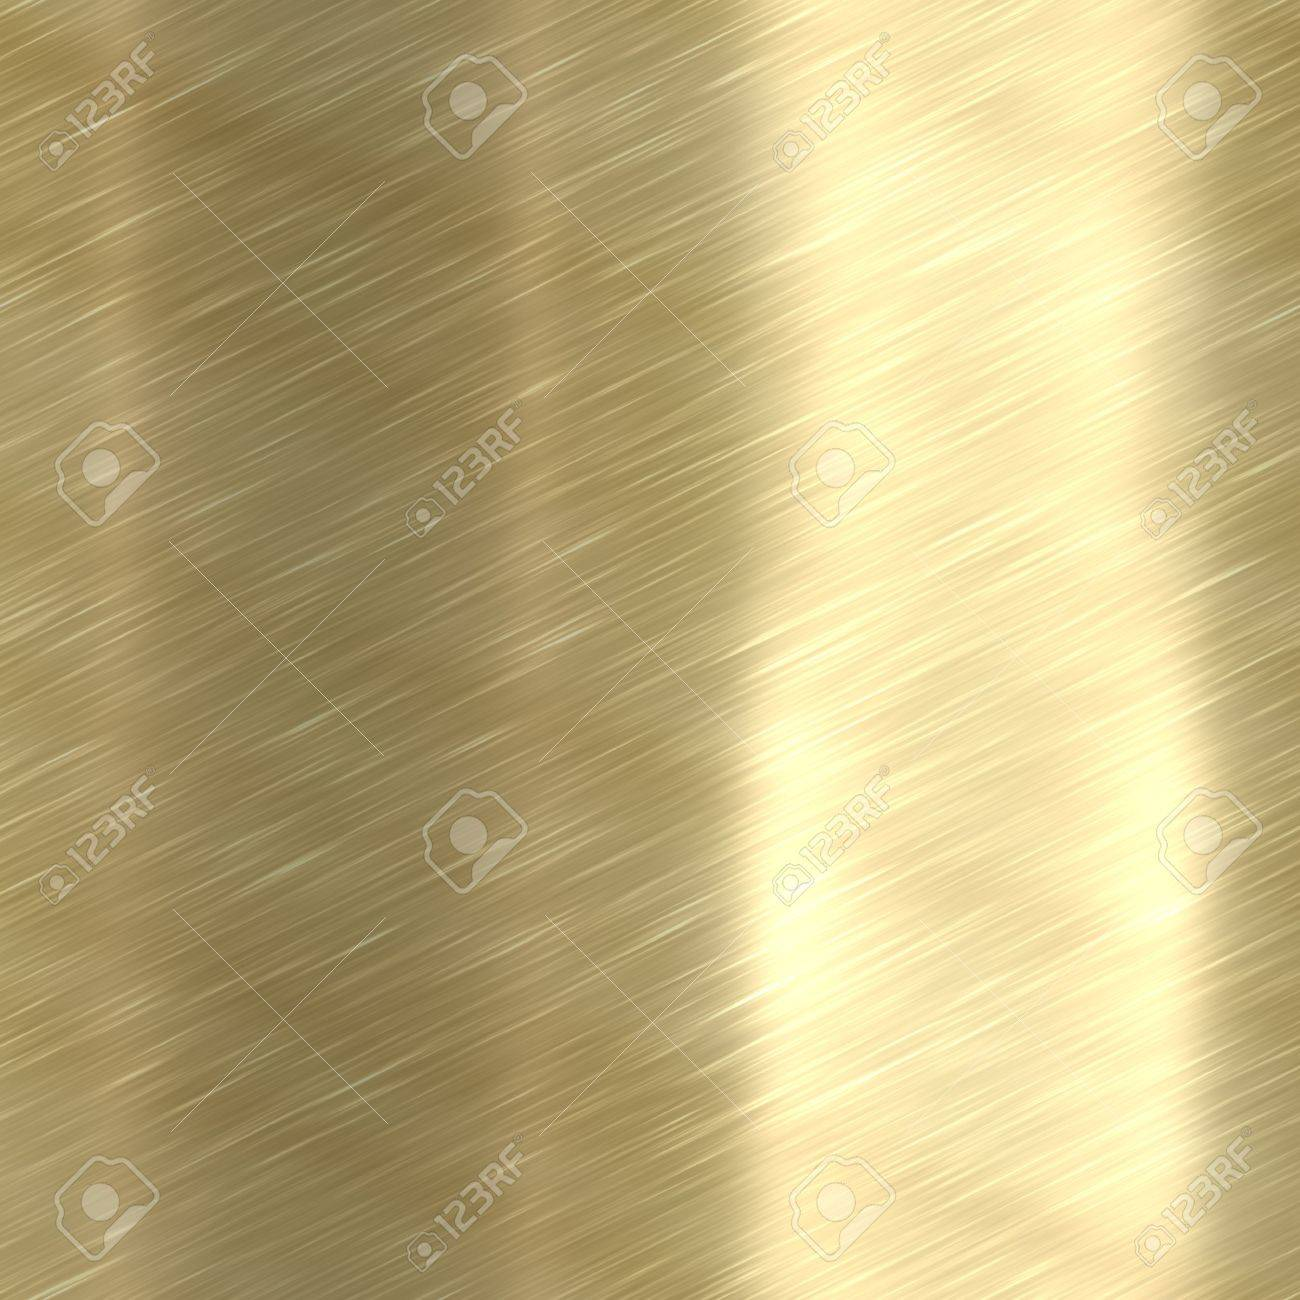 Texture background illustration of brushed glossy metal surface Stock Illustration - 3464379